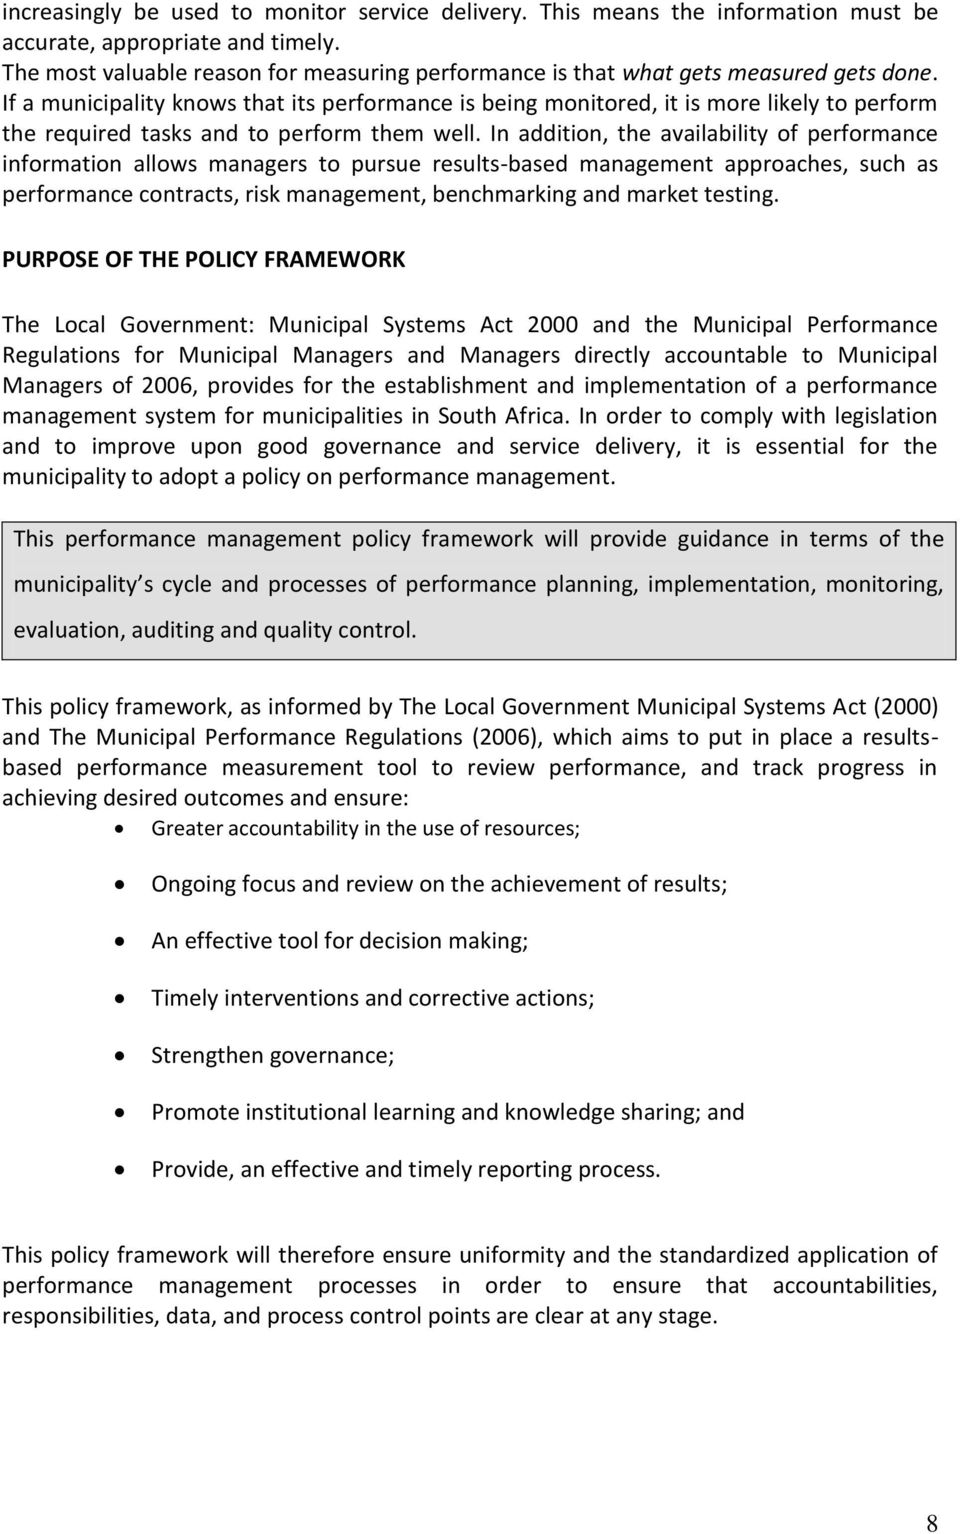 If a municipality knows that its performance is being monitored, it is more likely to perform the required tasks and to perform them well.